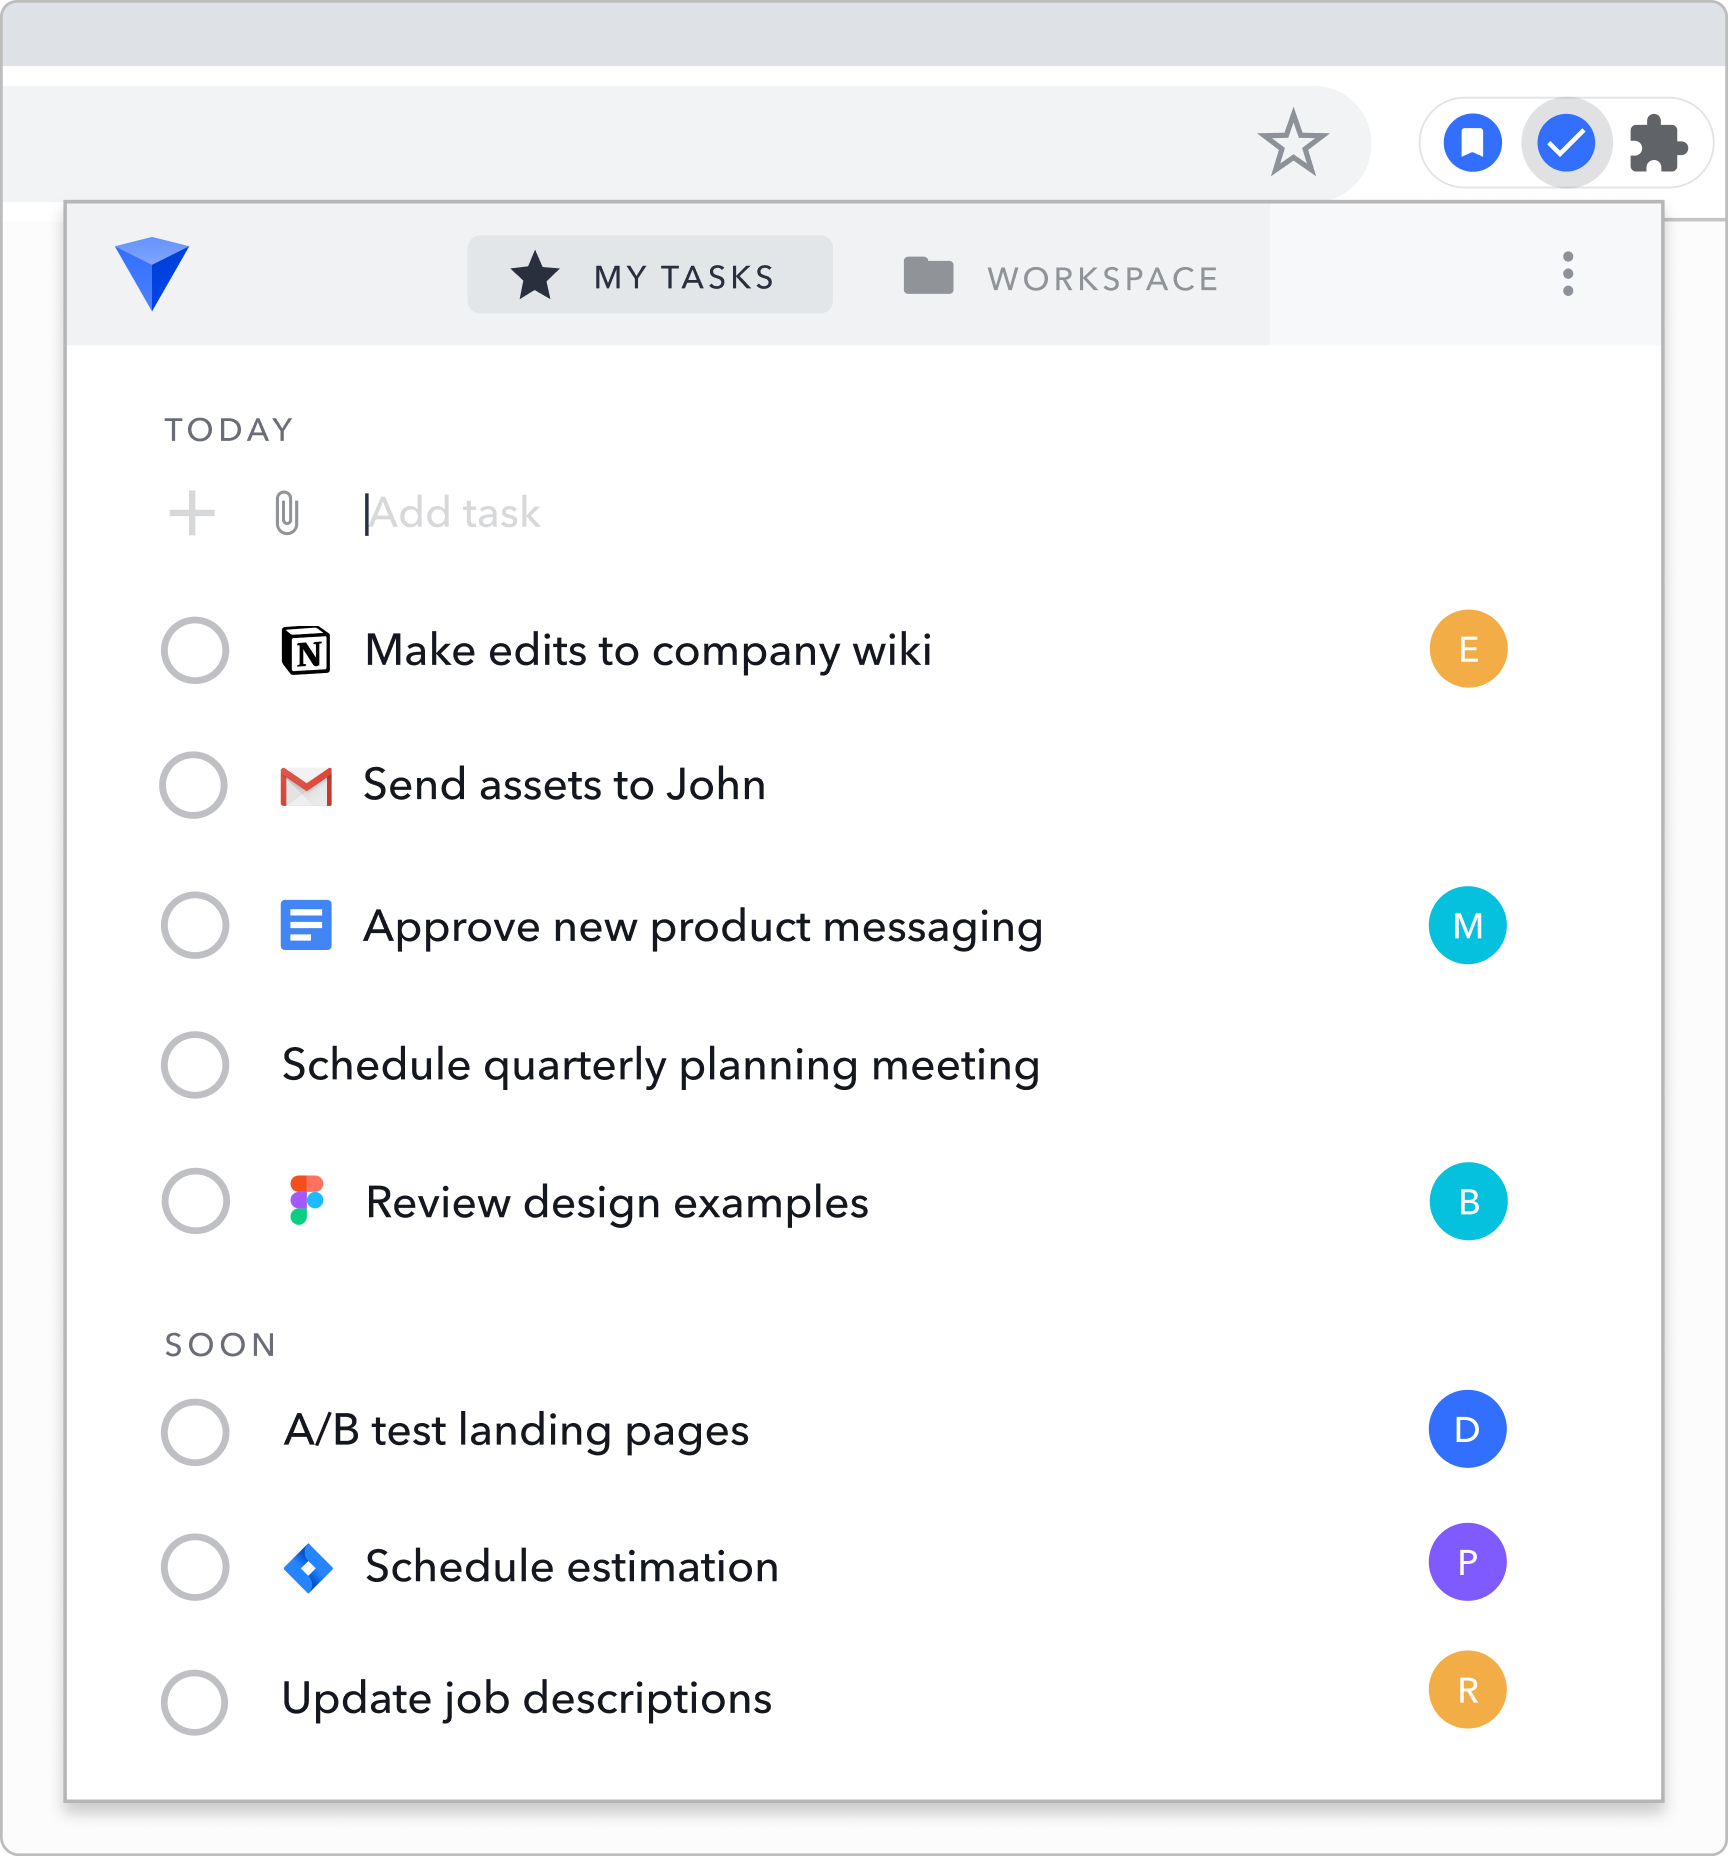 Image of My Tasks list in Workona, with separate sections for urgent tasks versus upcoming tasks